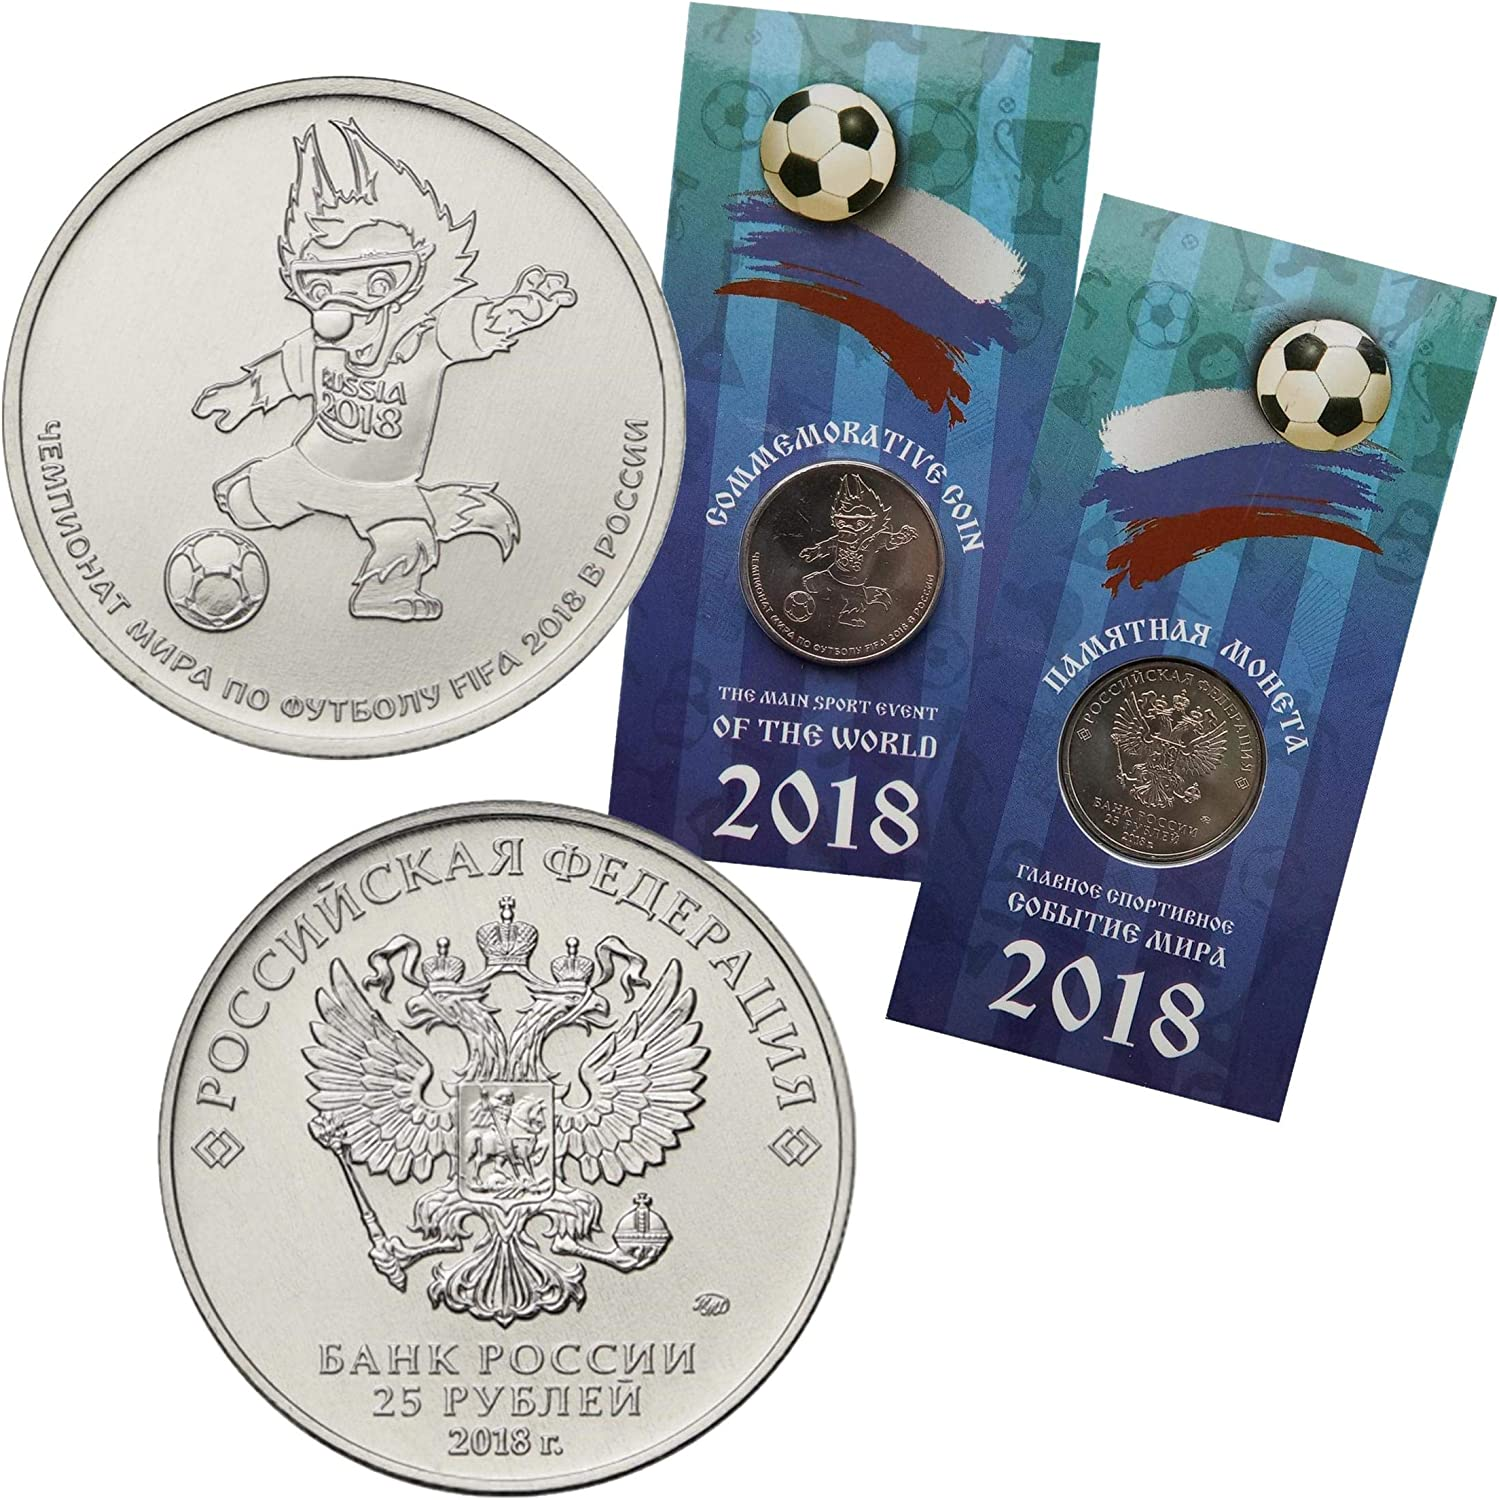 Russland Russia Silver Coin 3 Rubles 2015 Year Of literature In Russia